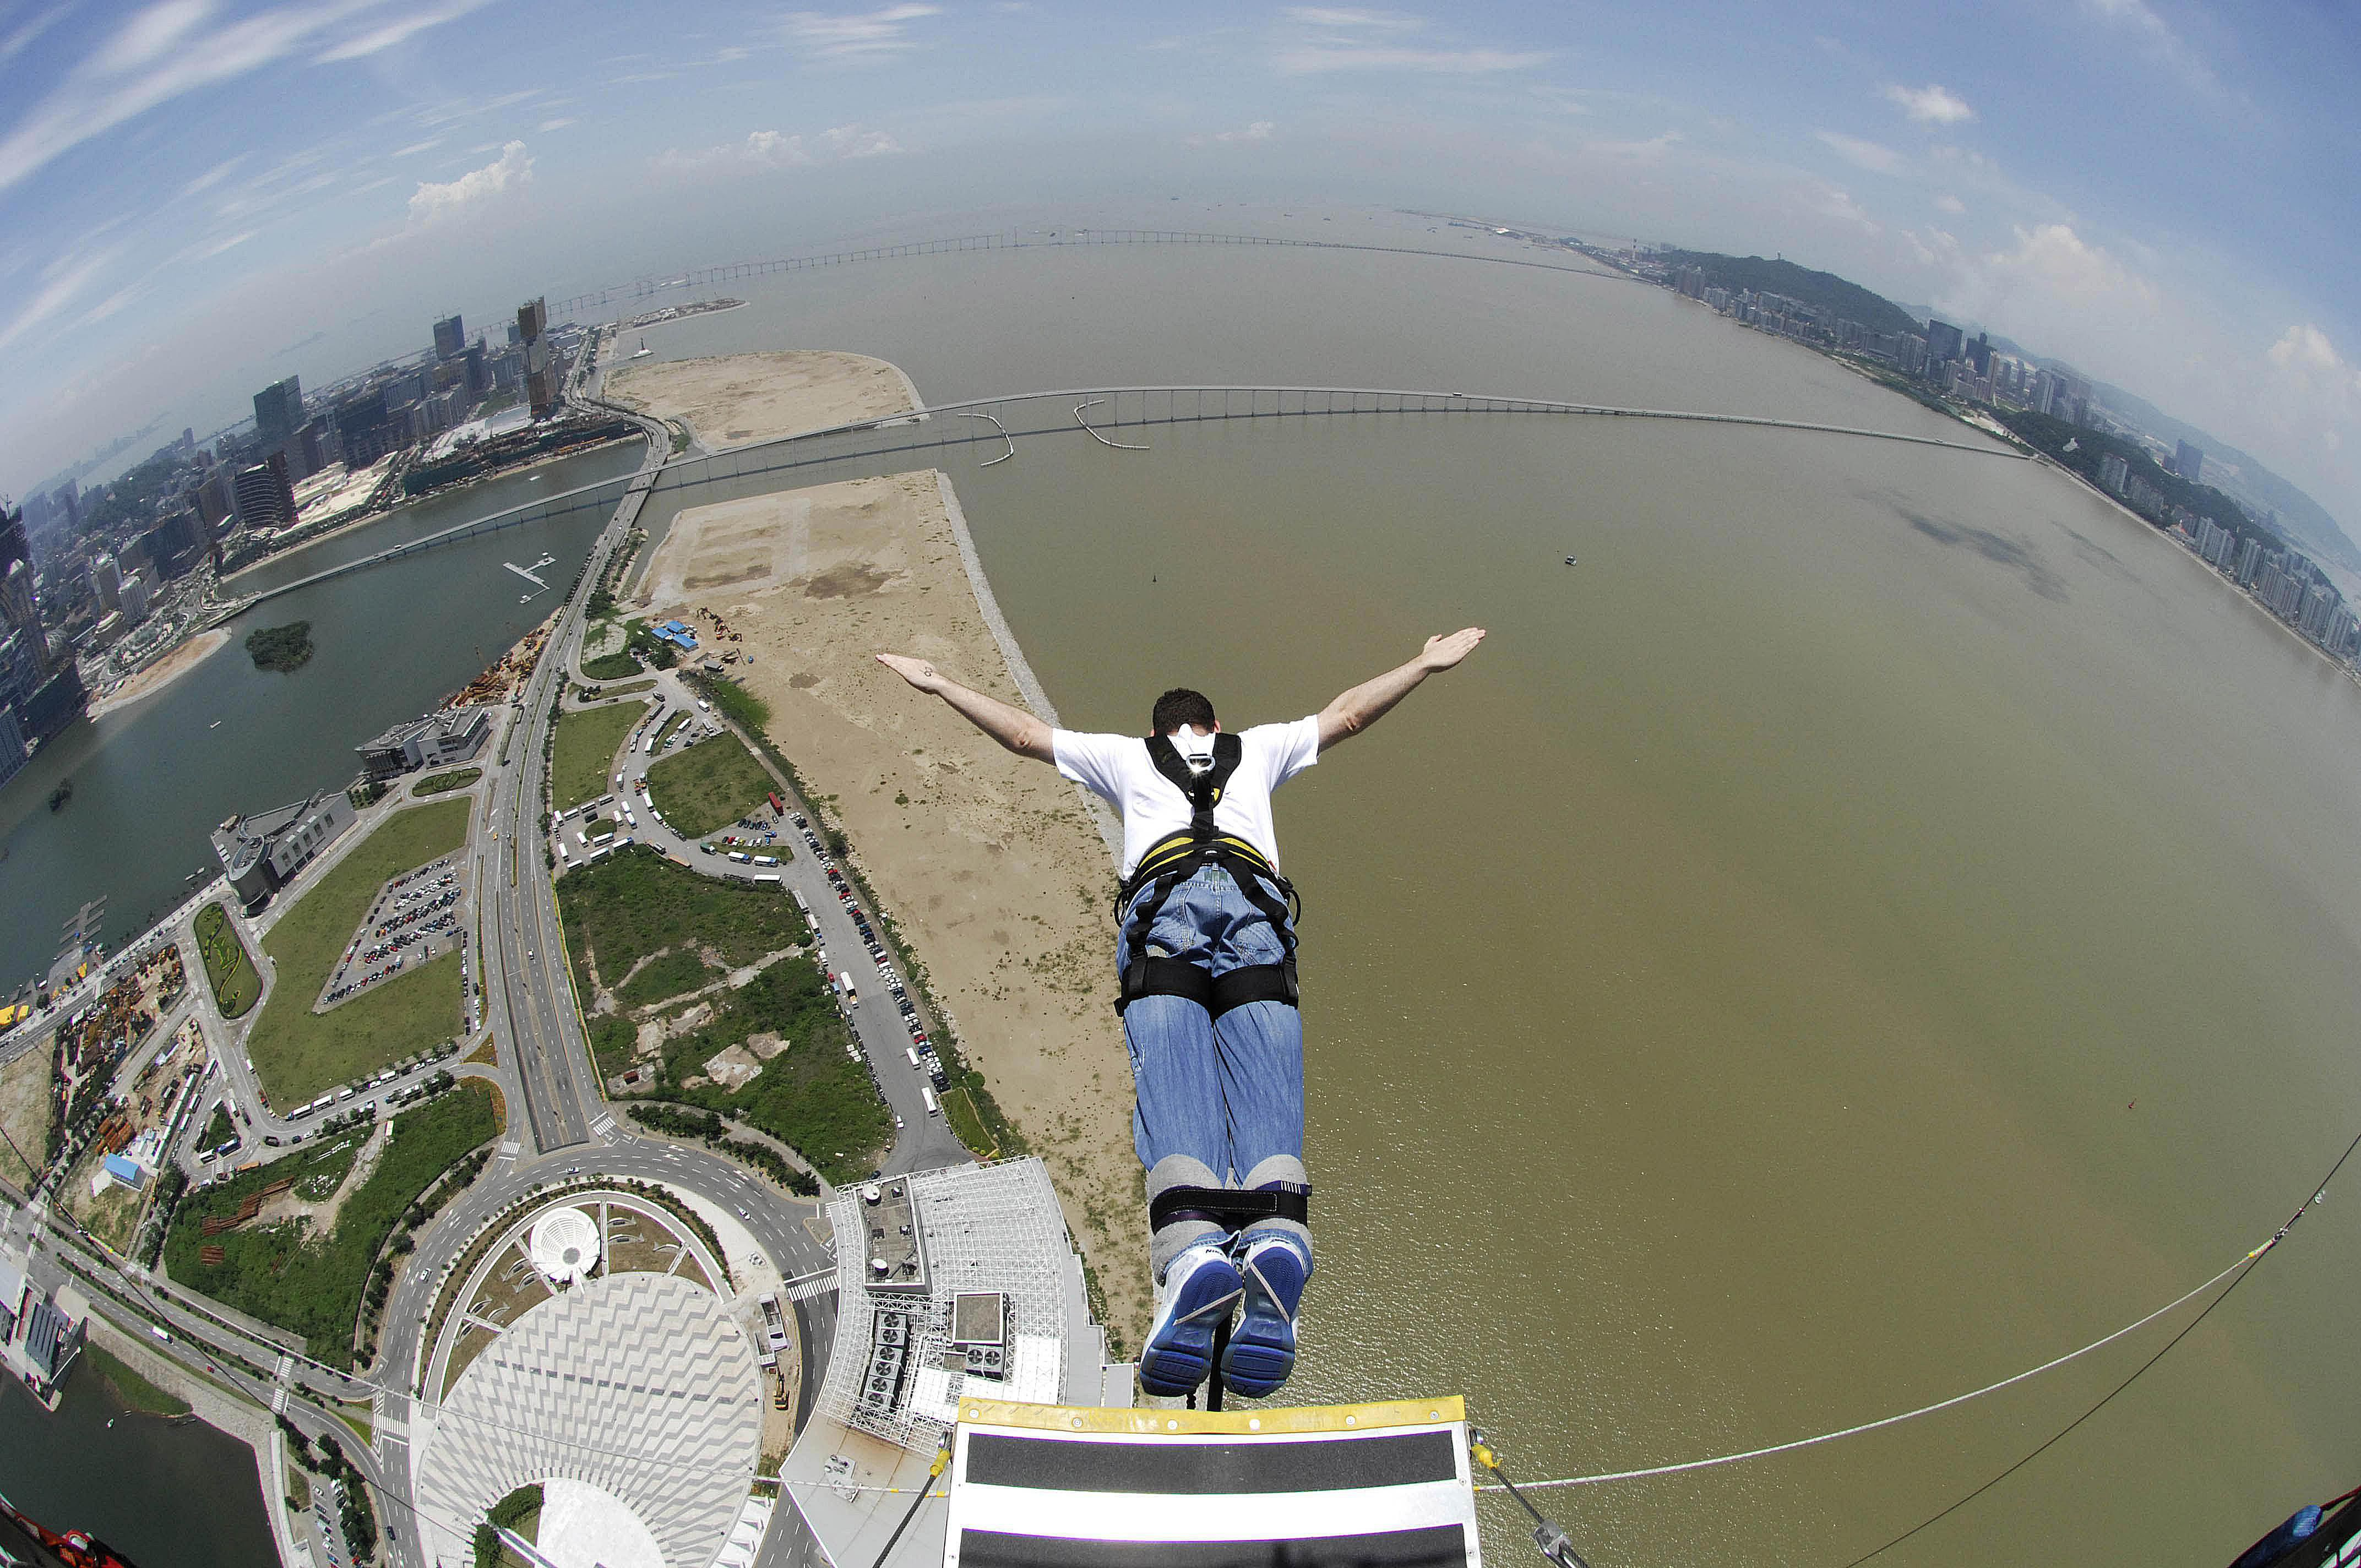 The Worlds Best Destinations For Skydiving - Take the plunge 8 best places in the world to bungee jump